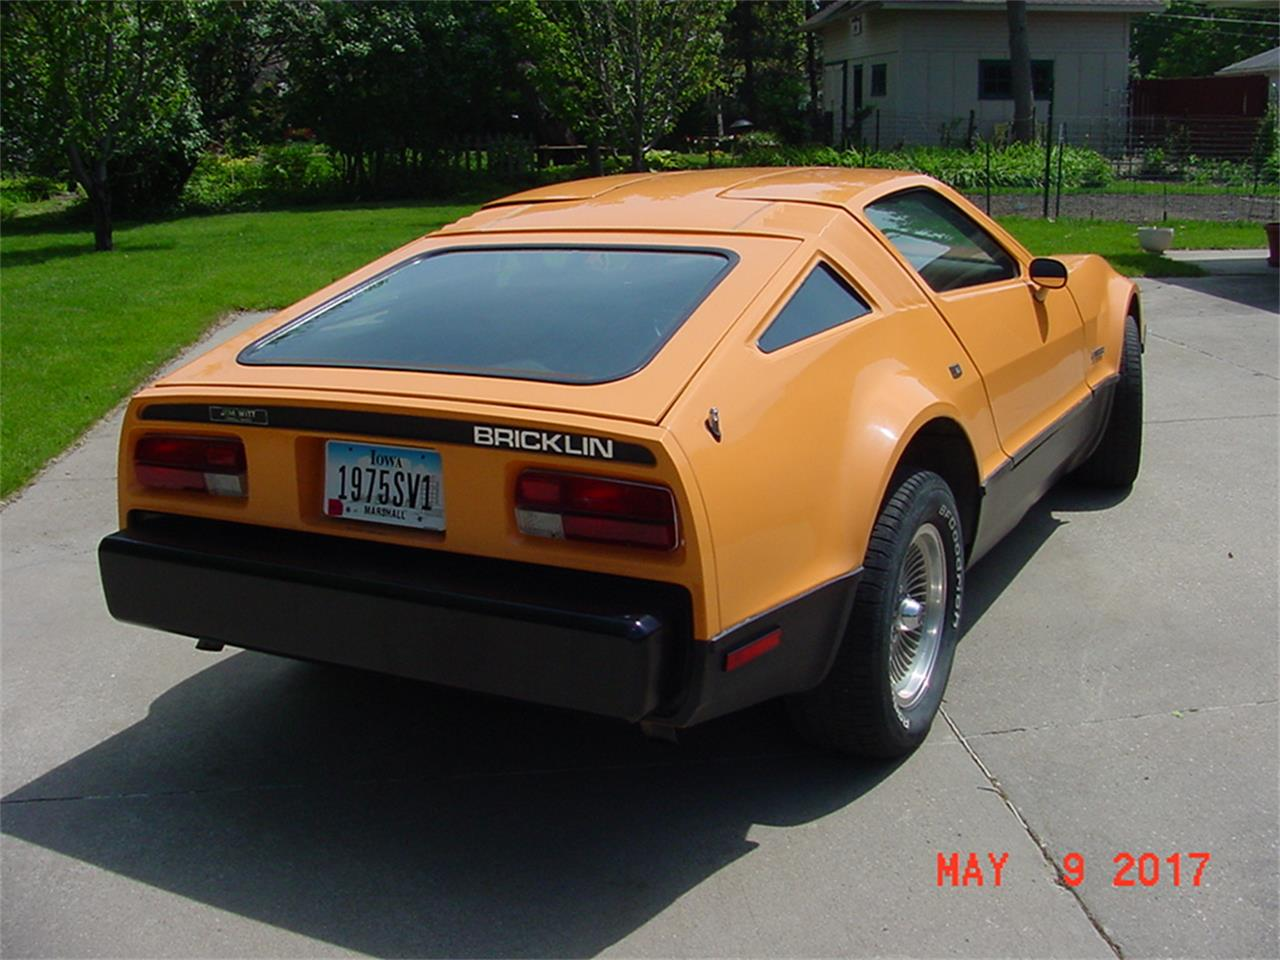 Large Picture of '75 SV 1 - L26M